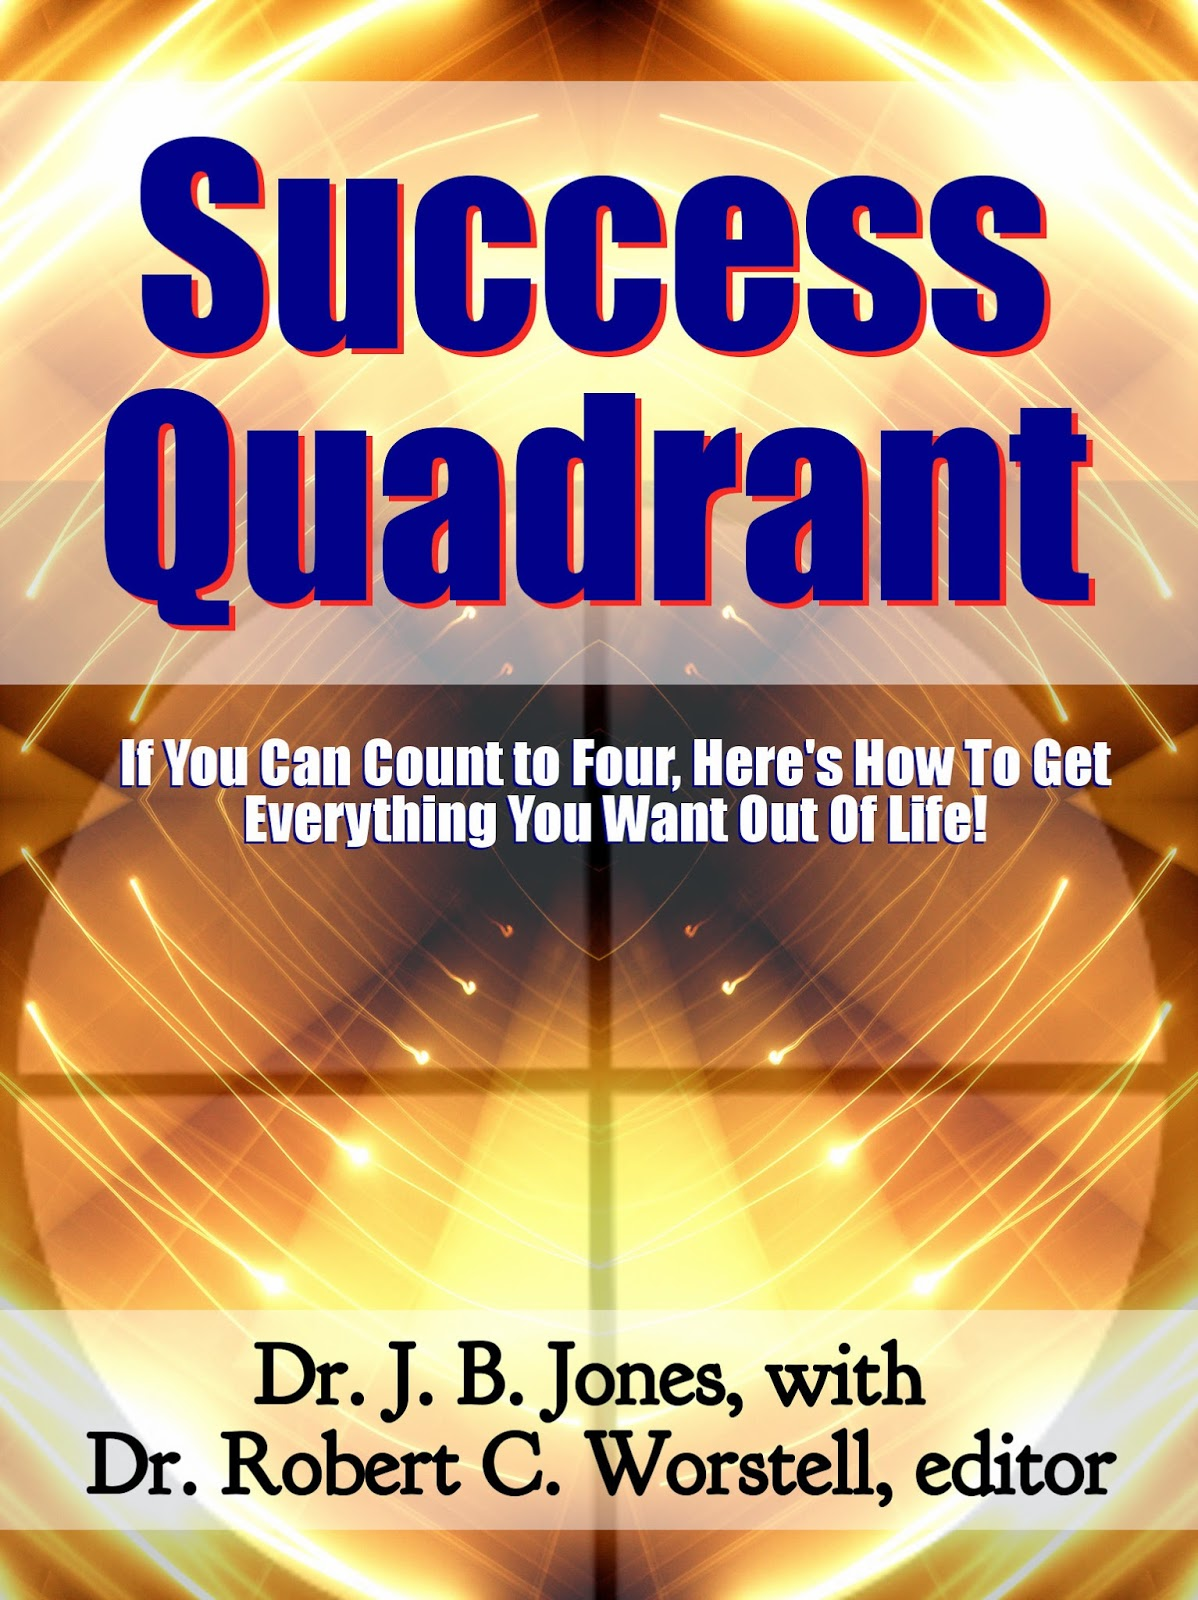 Success Quadrant by Dr. J. B. Jones, with J. Earl Shoeff